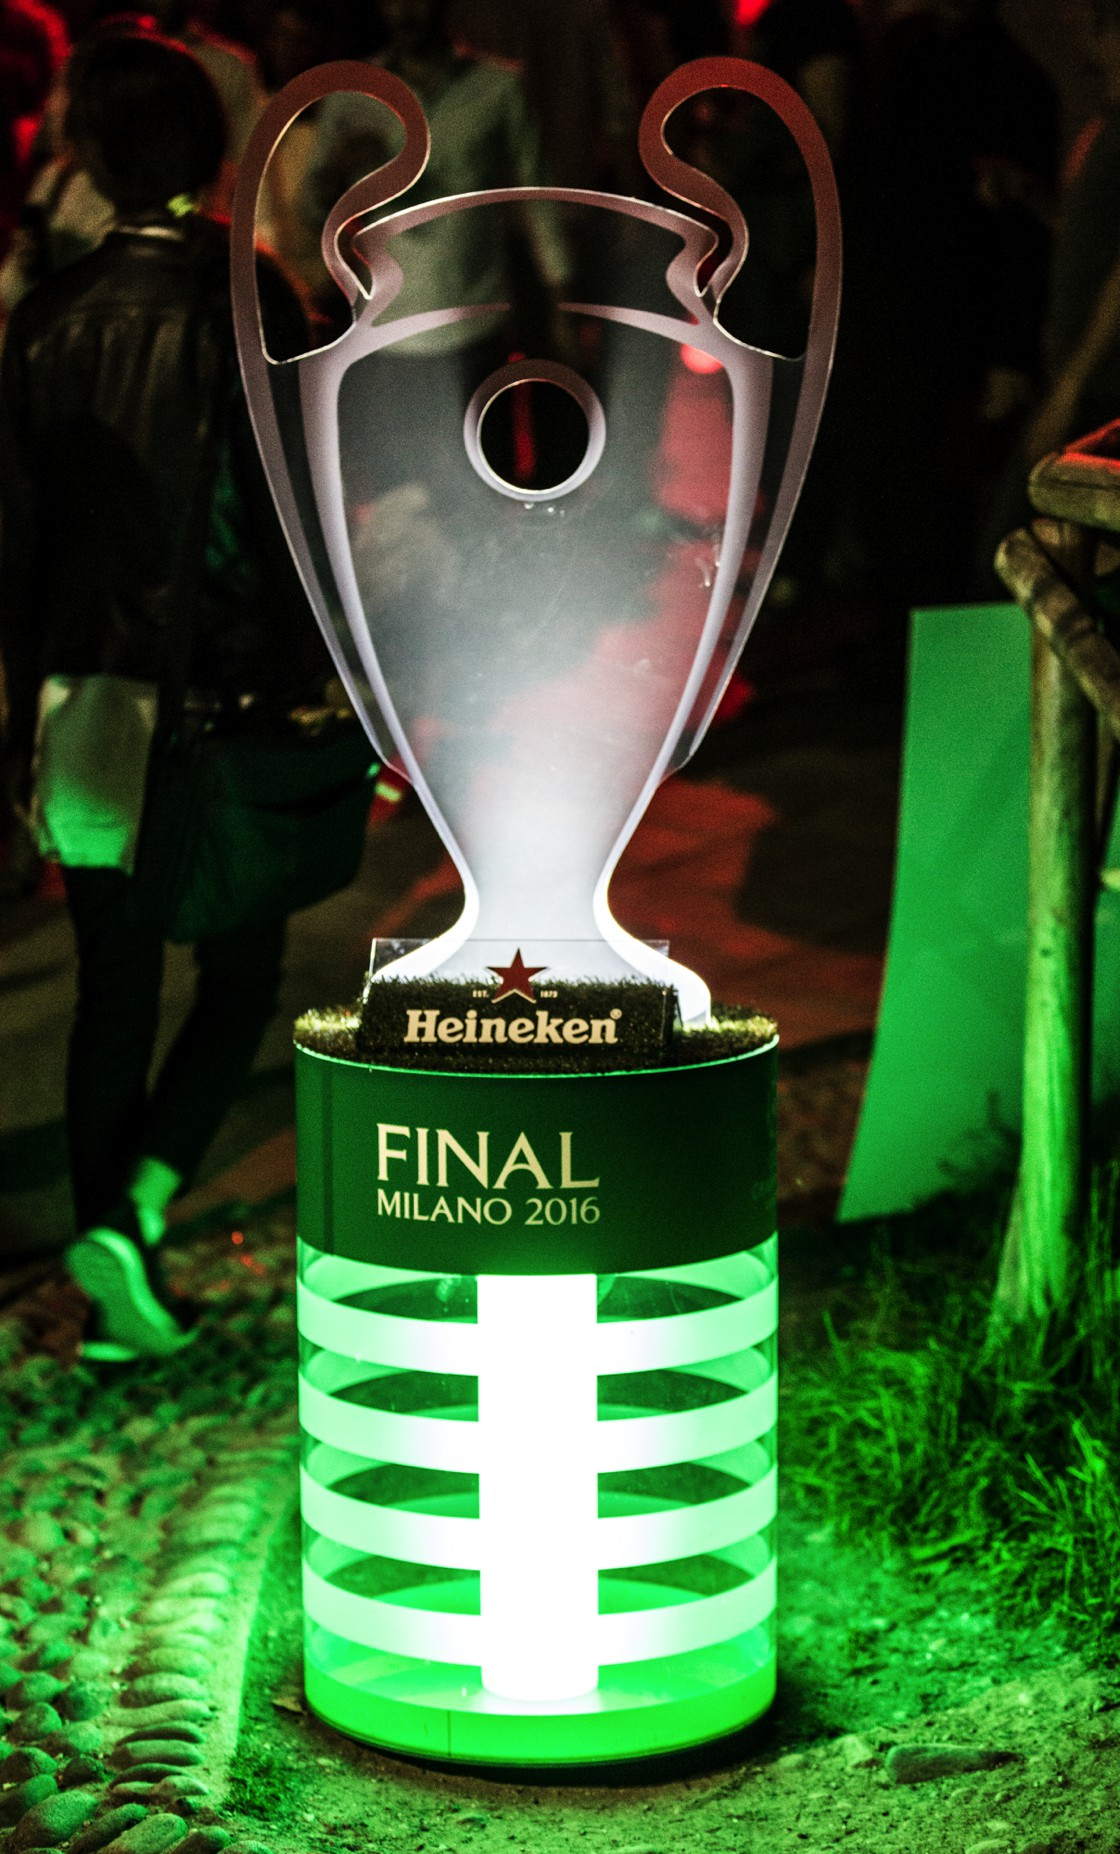 Heineken Champions League